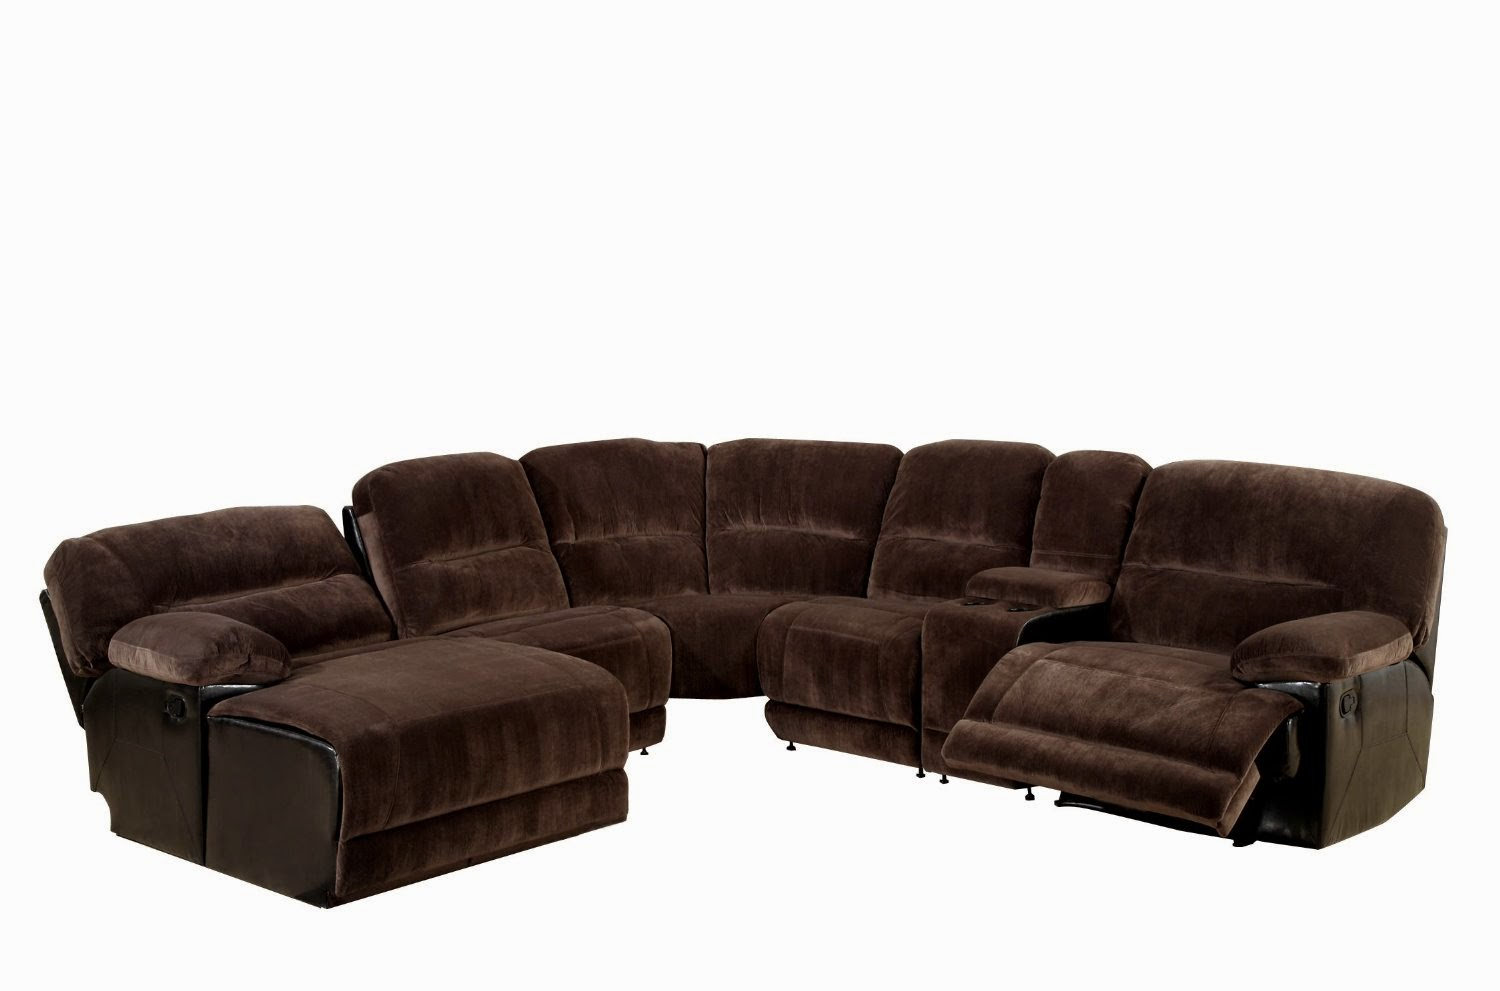 loukas extra long reclining sectional sofa with chaise by. Black Bedroom Furniture Sets. Home Design Ideas